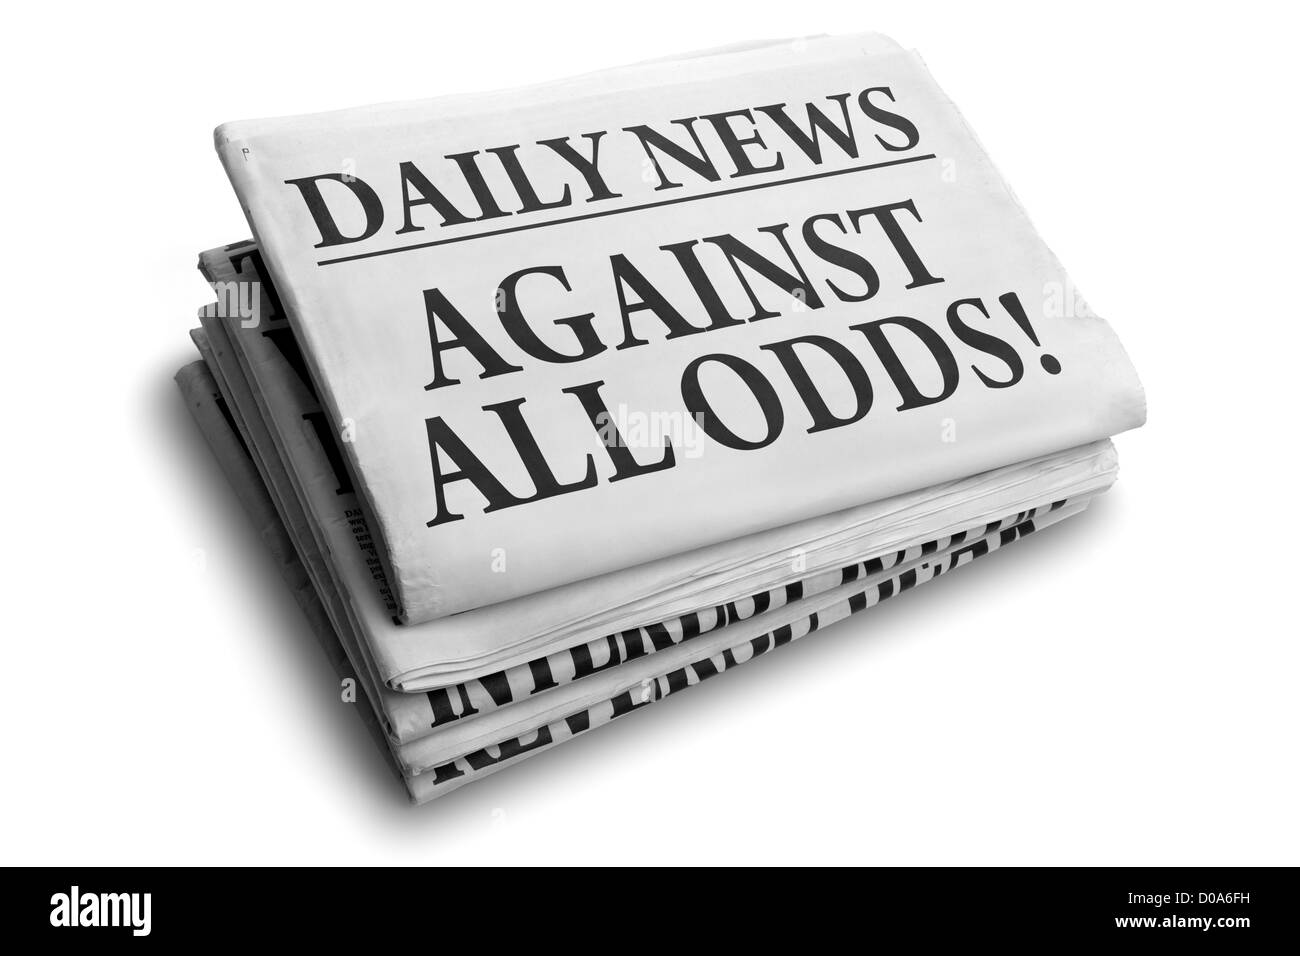 Against all odds daily newspaper headline - Stock Image